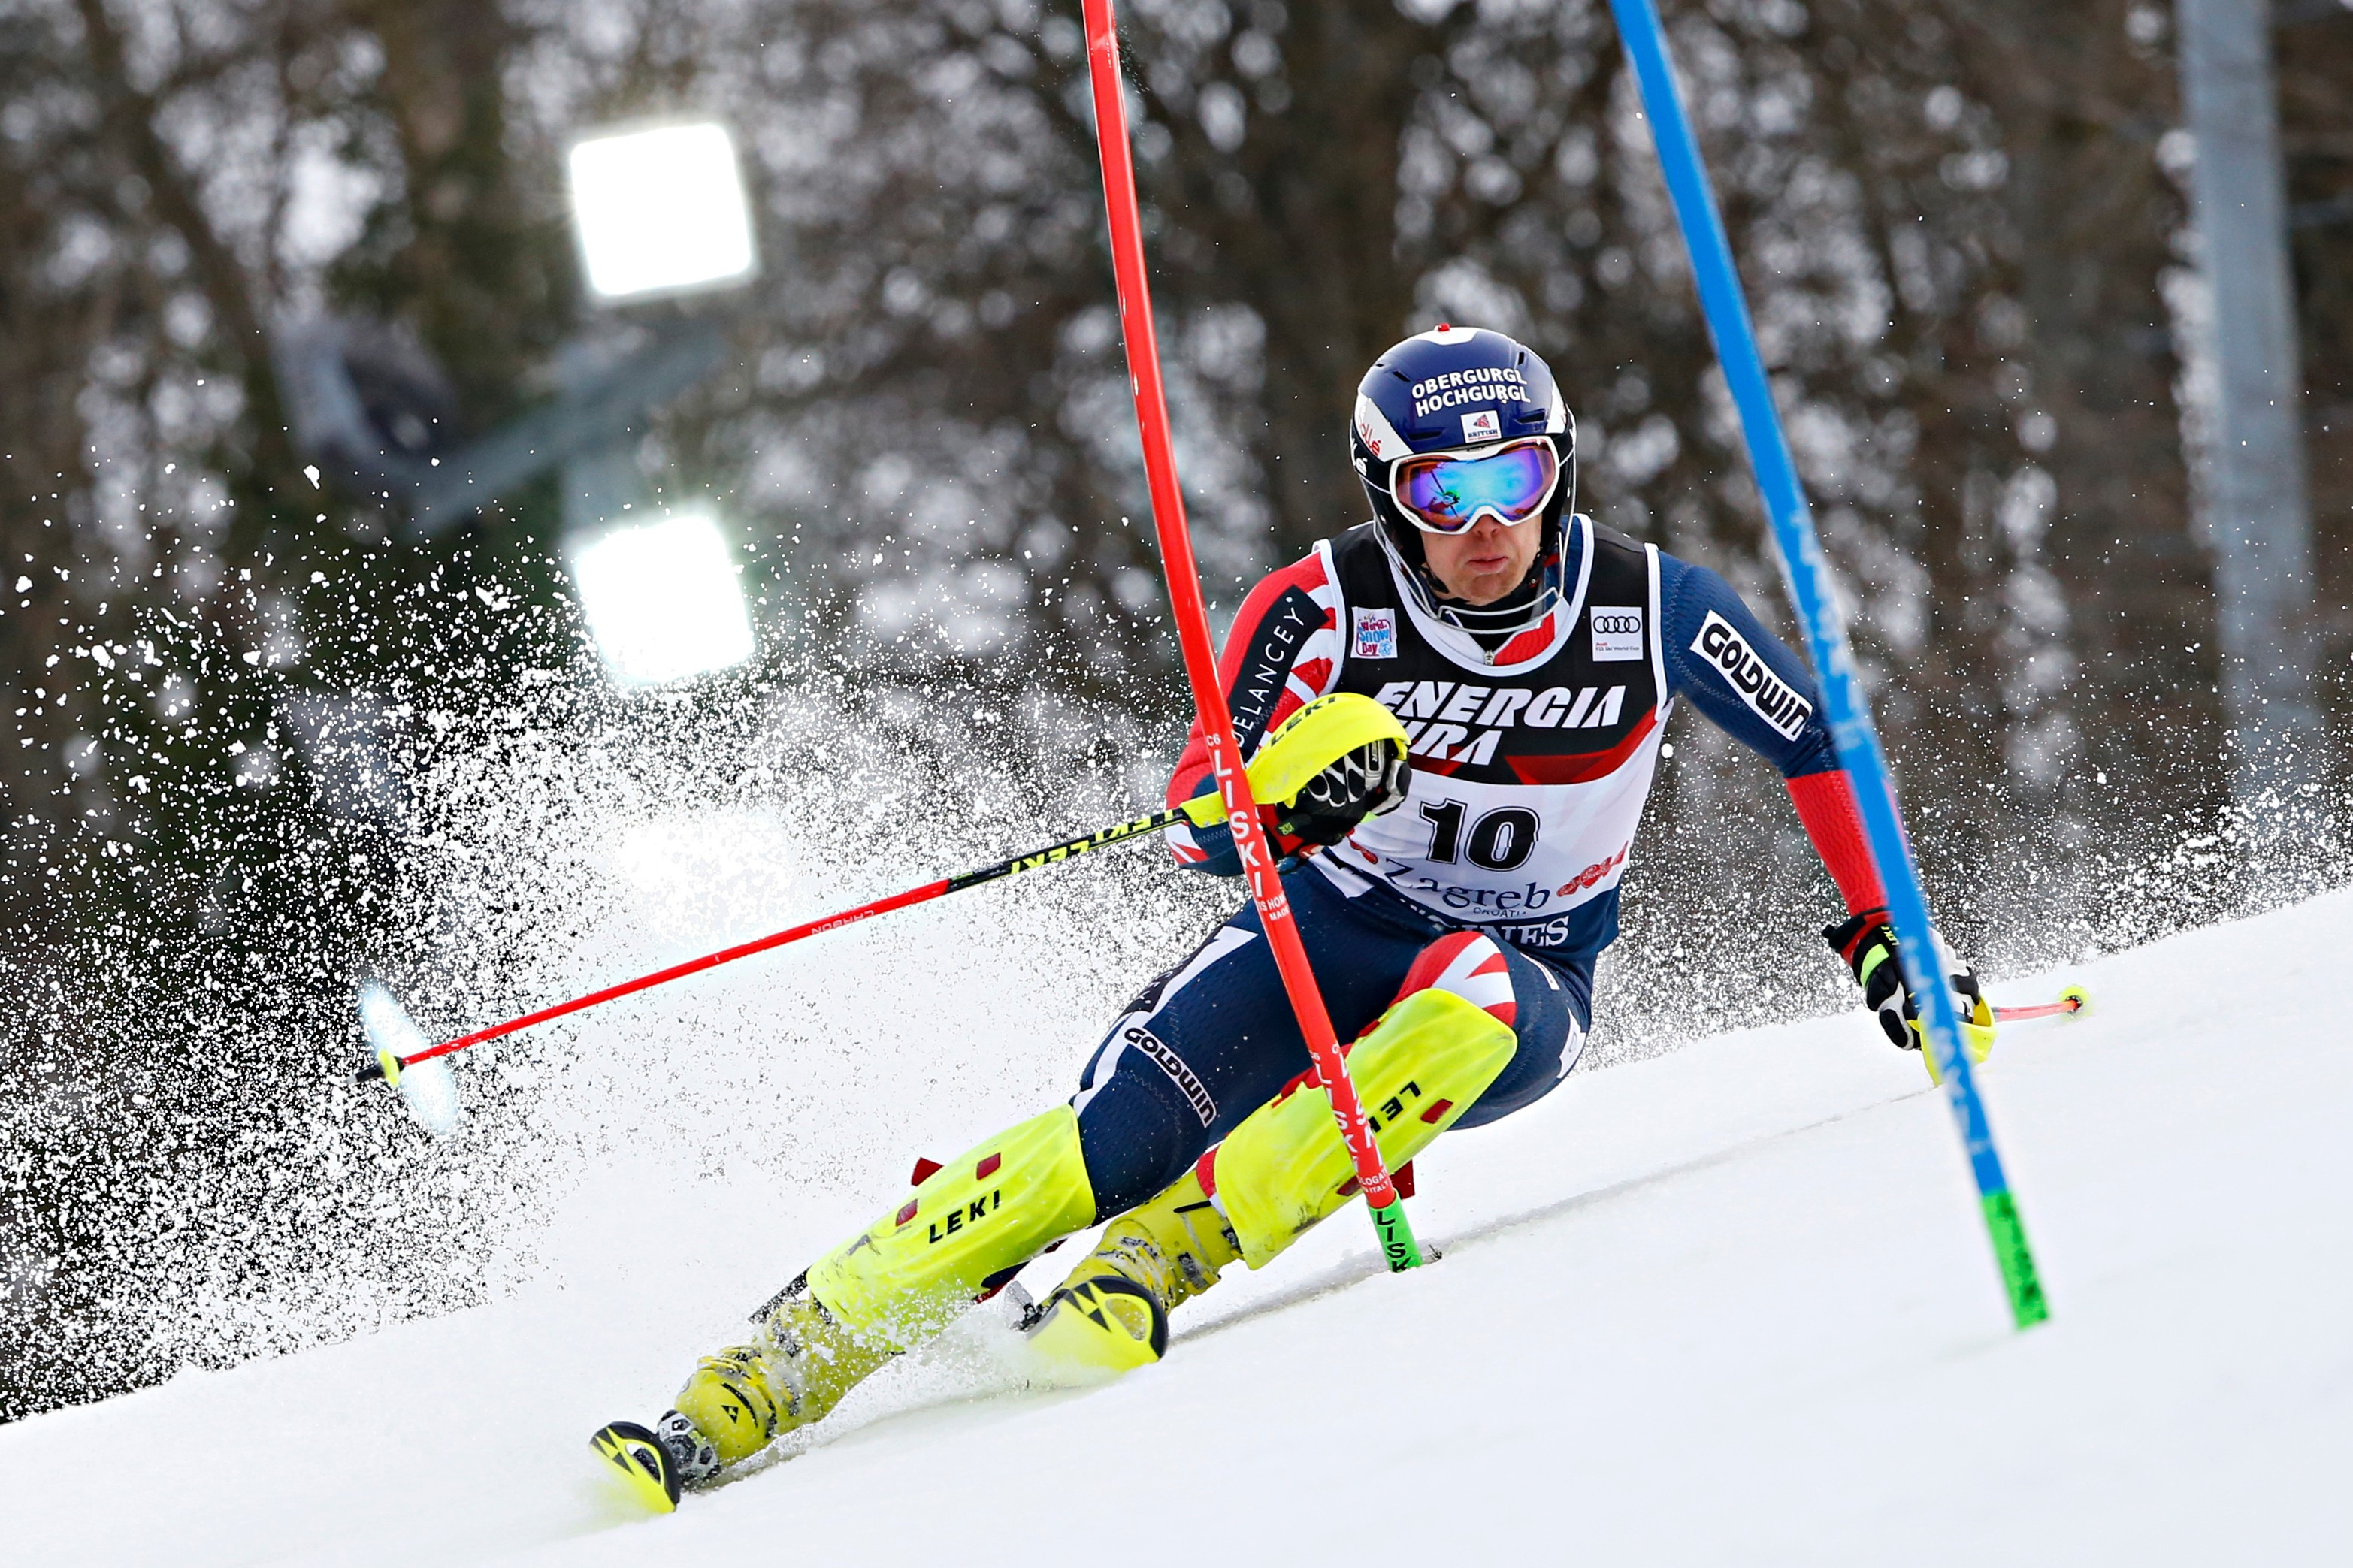 ZAGREB, CROATIA - JANUARY 04: Dave Ryding of Great Britain competes during the Audi FIS Alpine Ski World Cup Men's Slalom on January 4, 2018 in Zagreb, Croatia. (Photo by Christophe Pallot/Agence Zoom/Getty Images)  Getty, TL